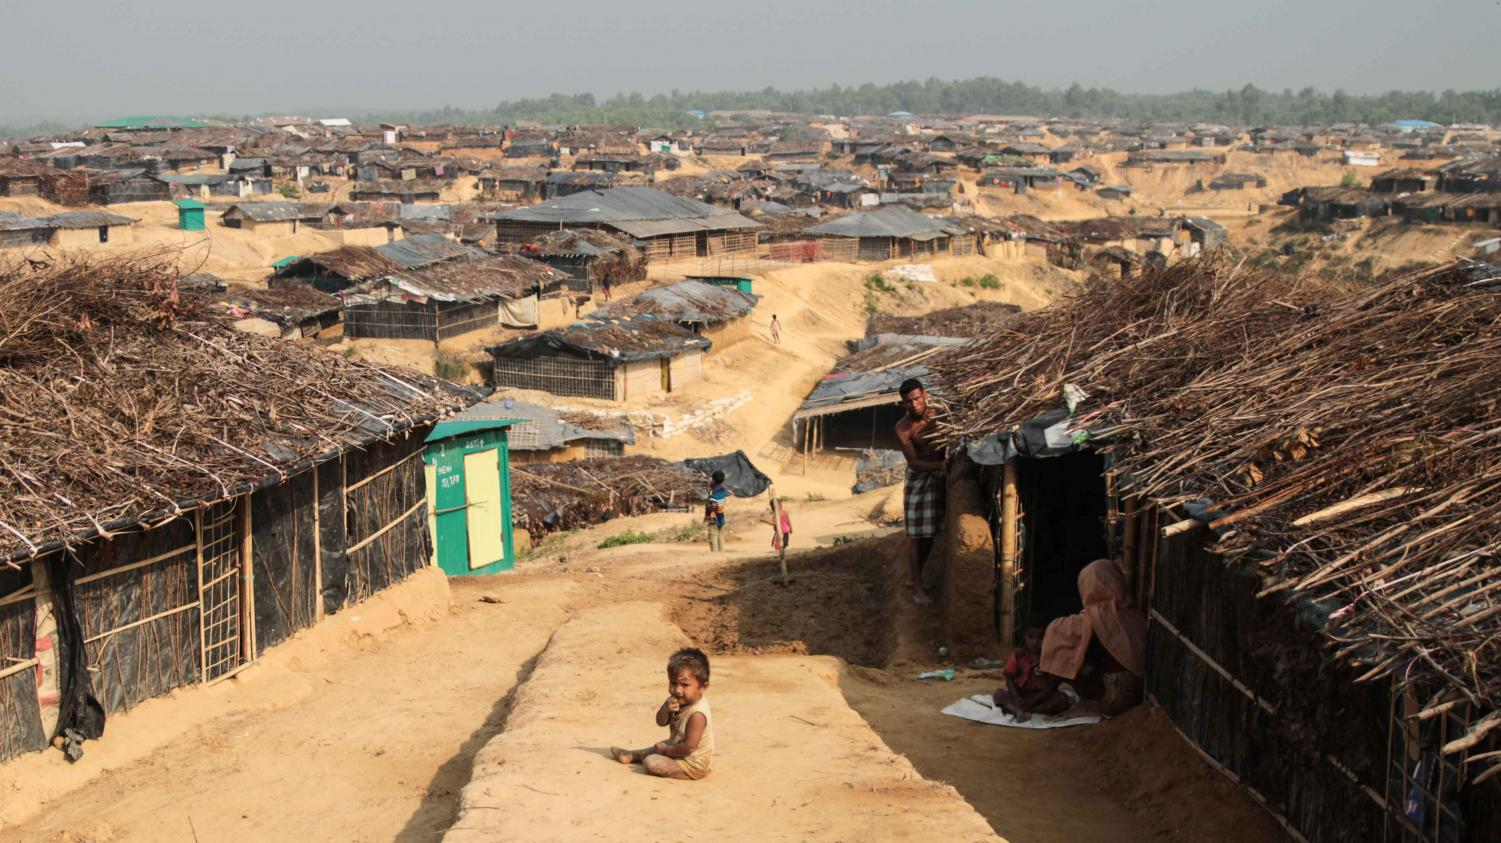 Rohingya Muslims face increasingly unpleasant conditions in refugee camps after escaping persecution in their native Myanmar.